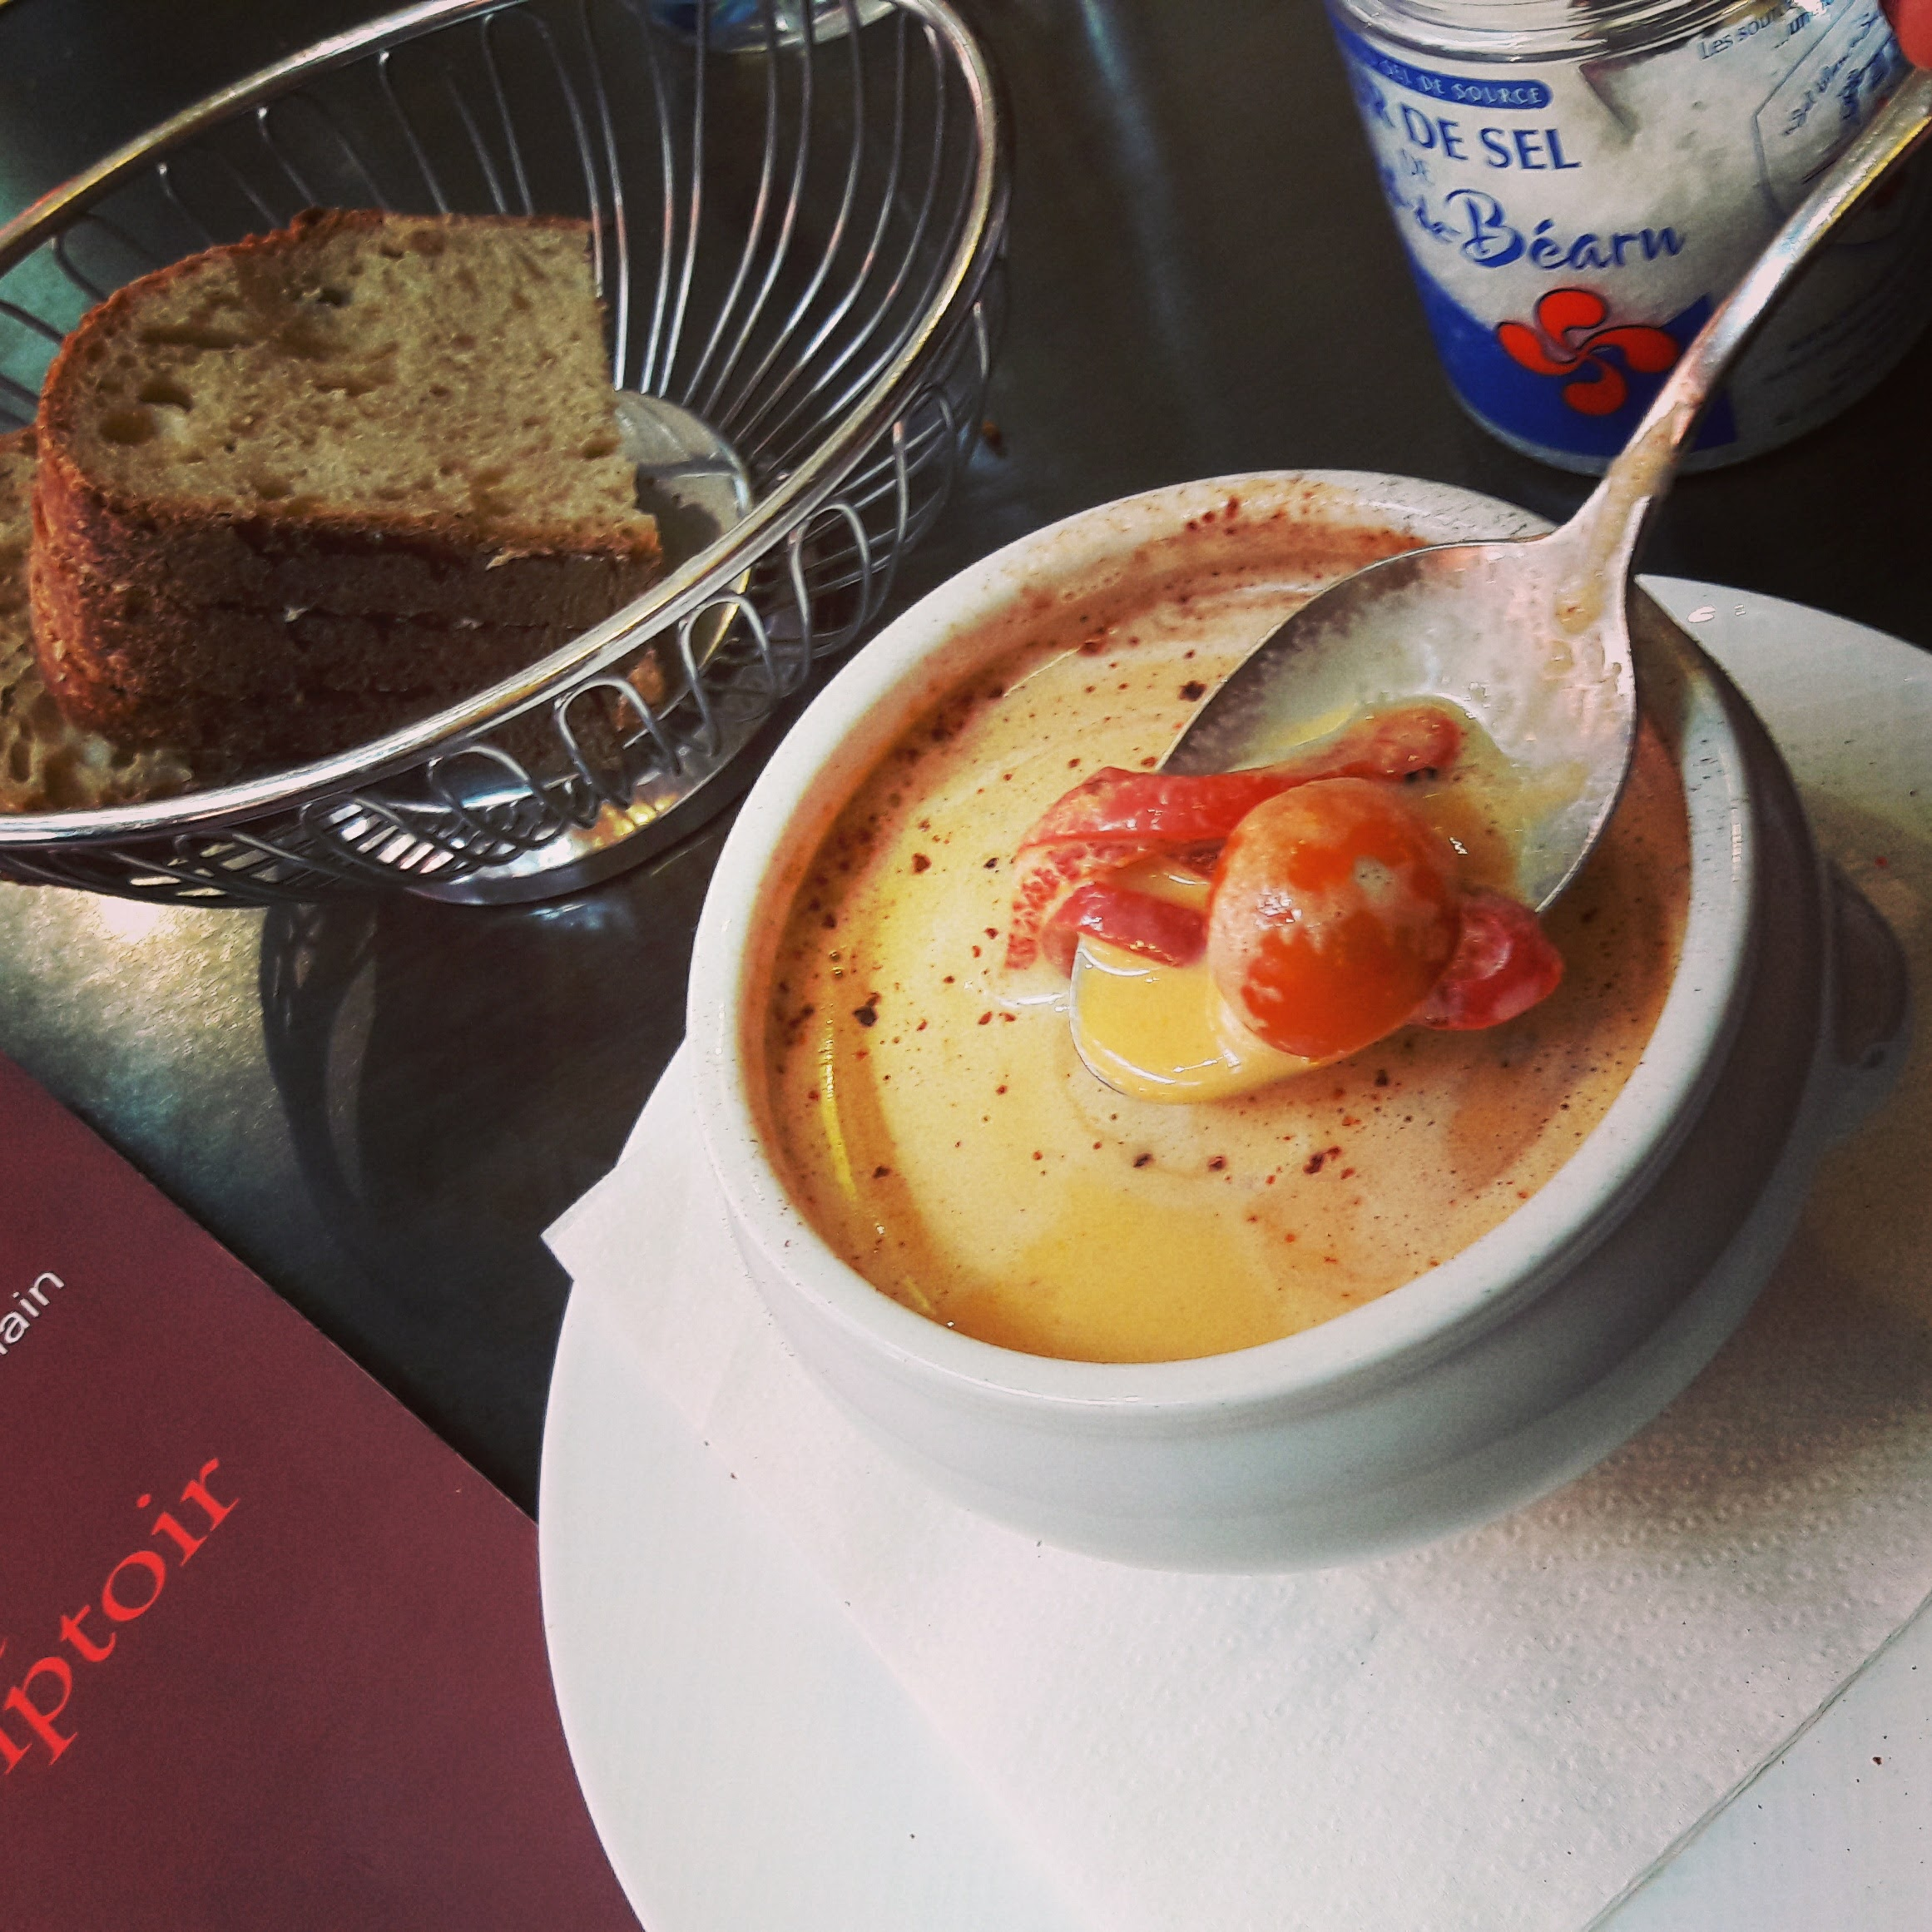 Nearly fell off my chair. Best lobster bisque I've ever tasted. A moment to remember and cherish.